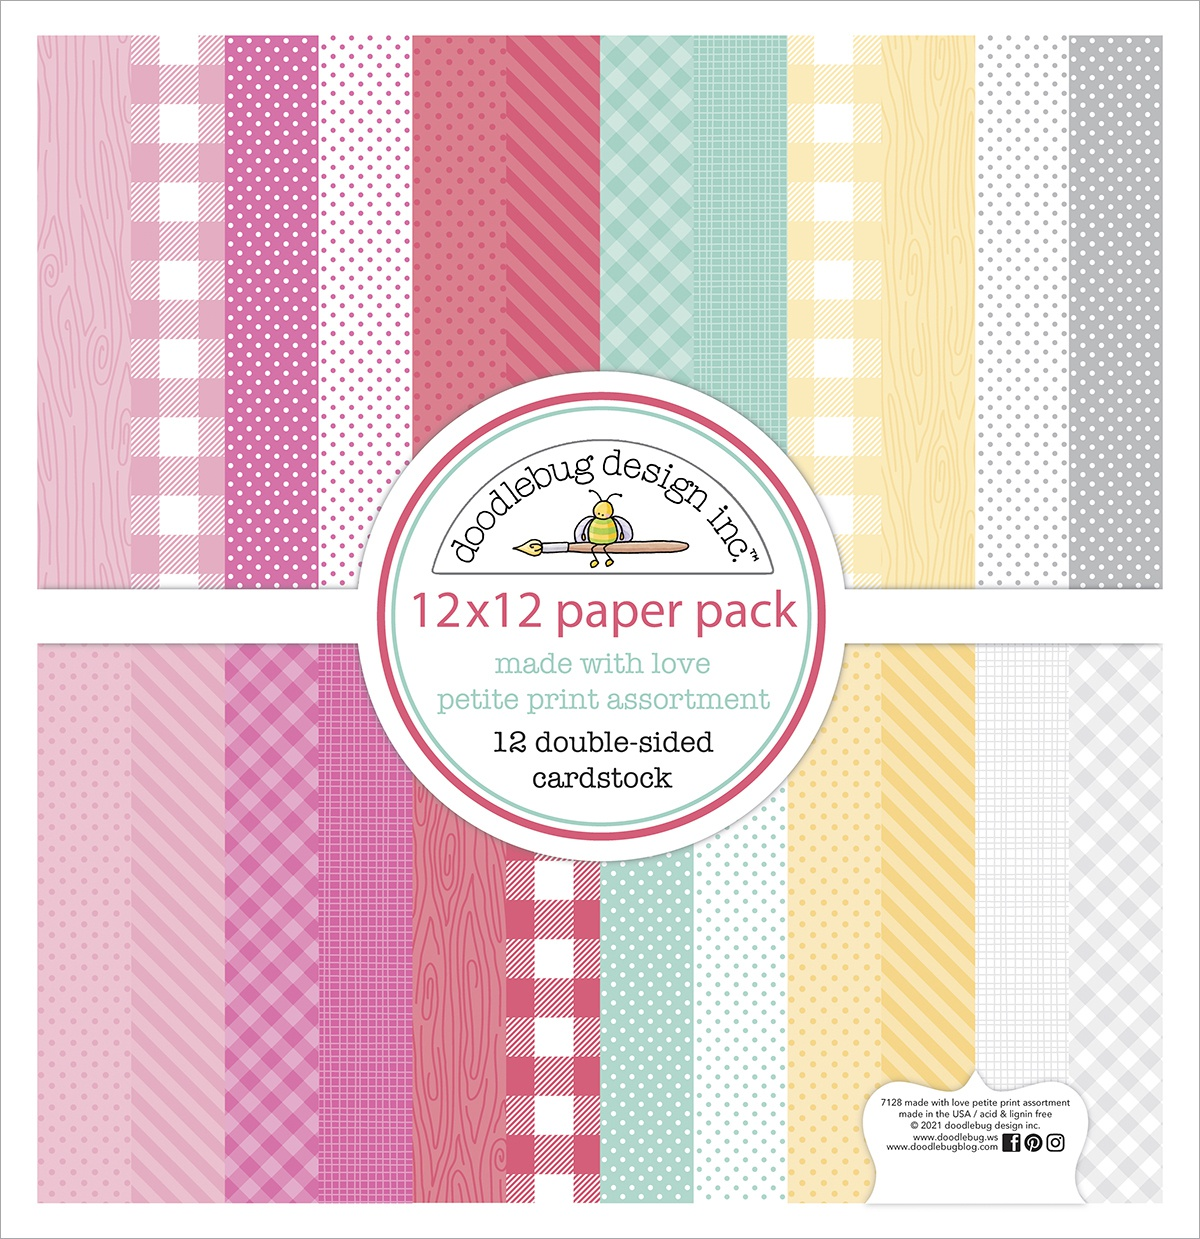 Doodlebug Petite Prints Double-Sided Cardstock 12X12 12/Pk-Made With Love, 12 ...